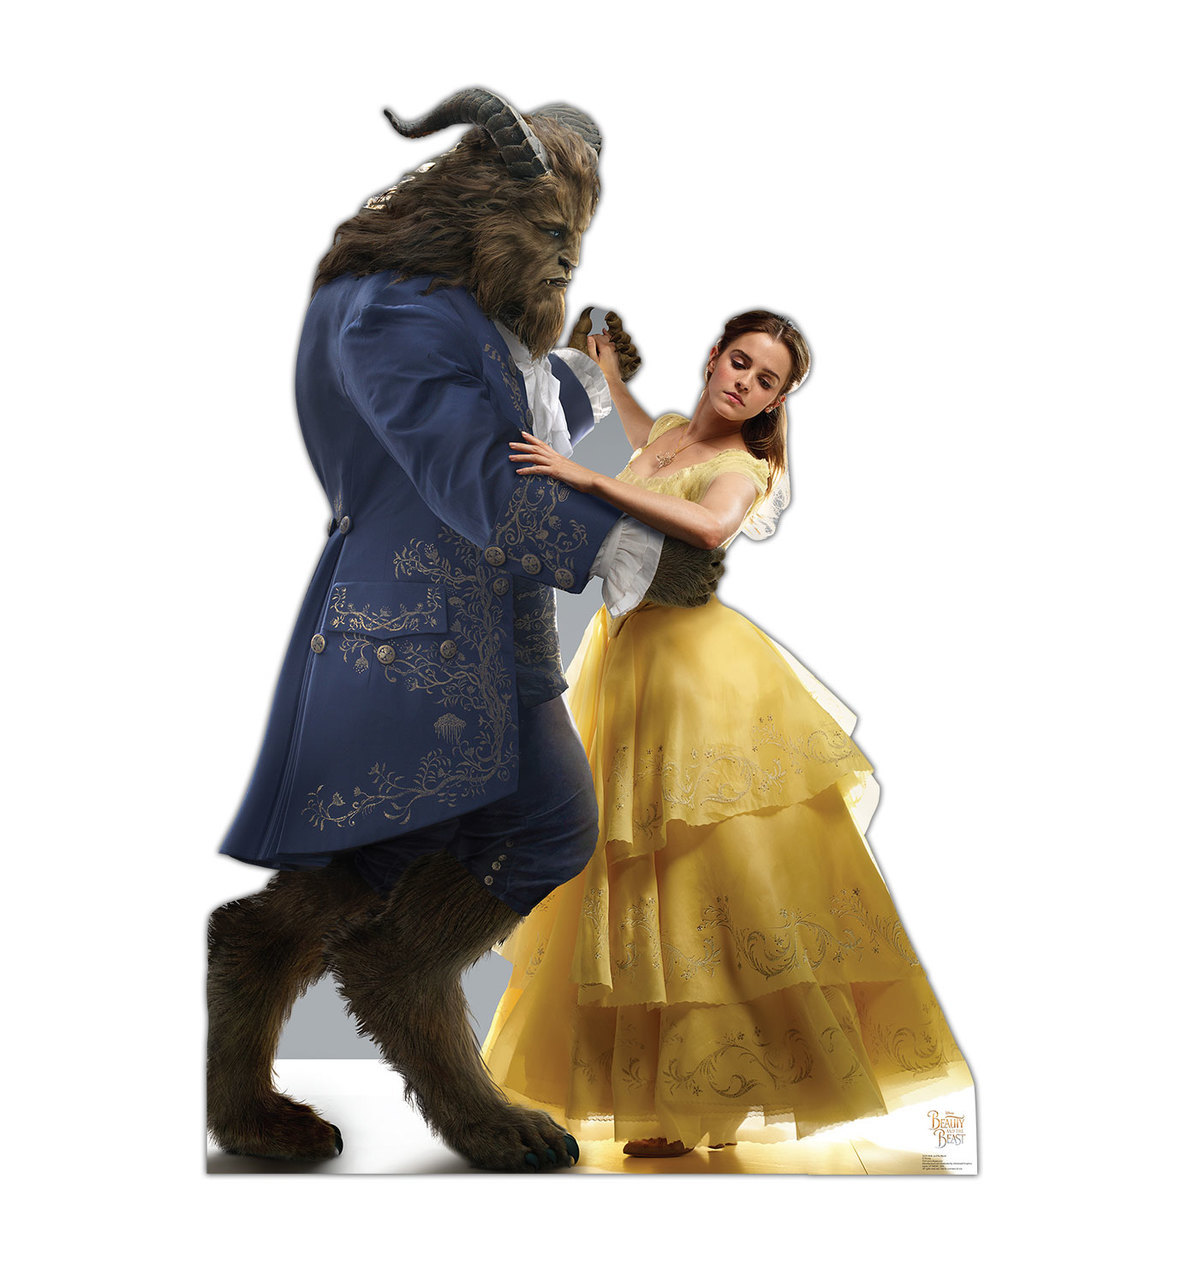 Belle And The Beast - Beauty And The Beast Standup Standee Cardboard Cutout